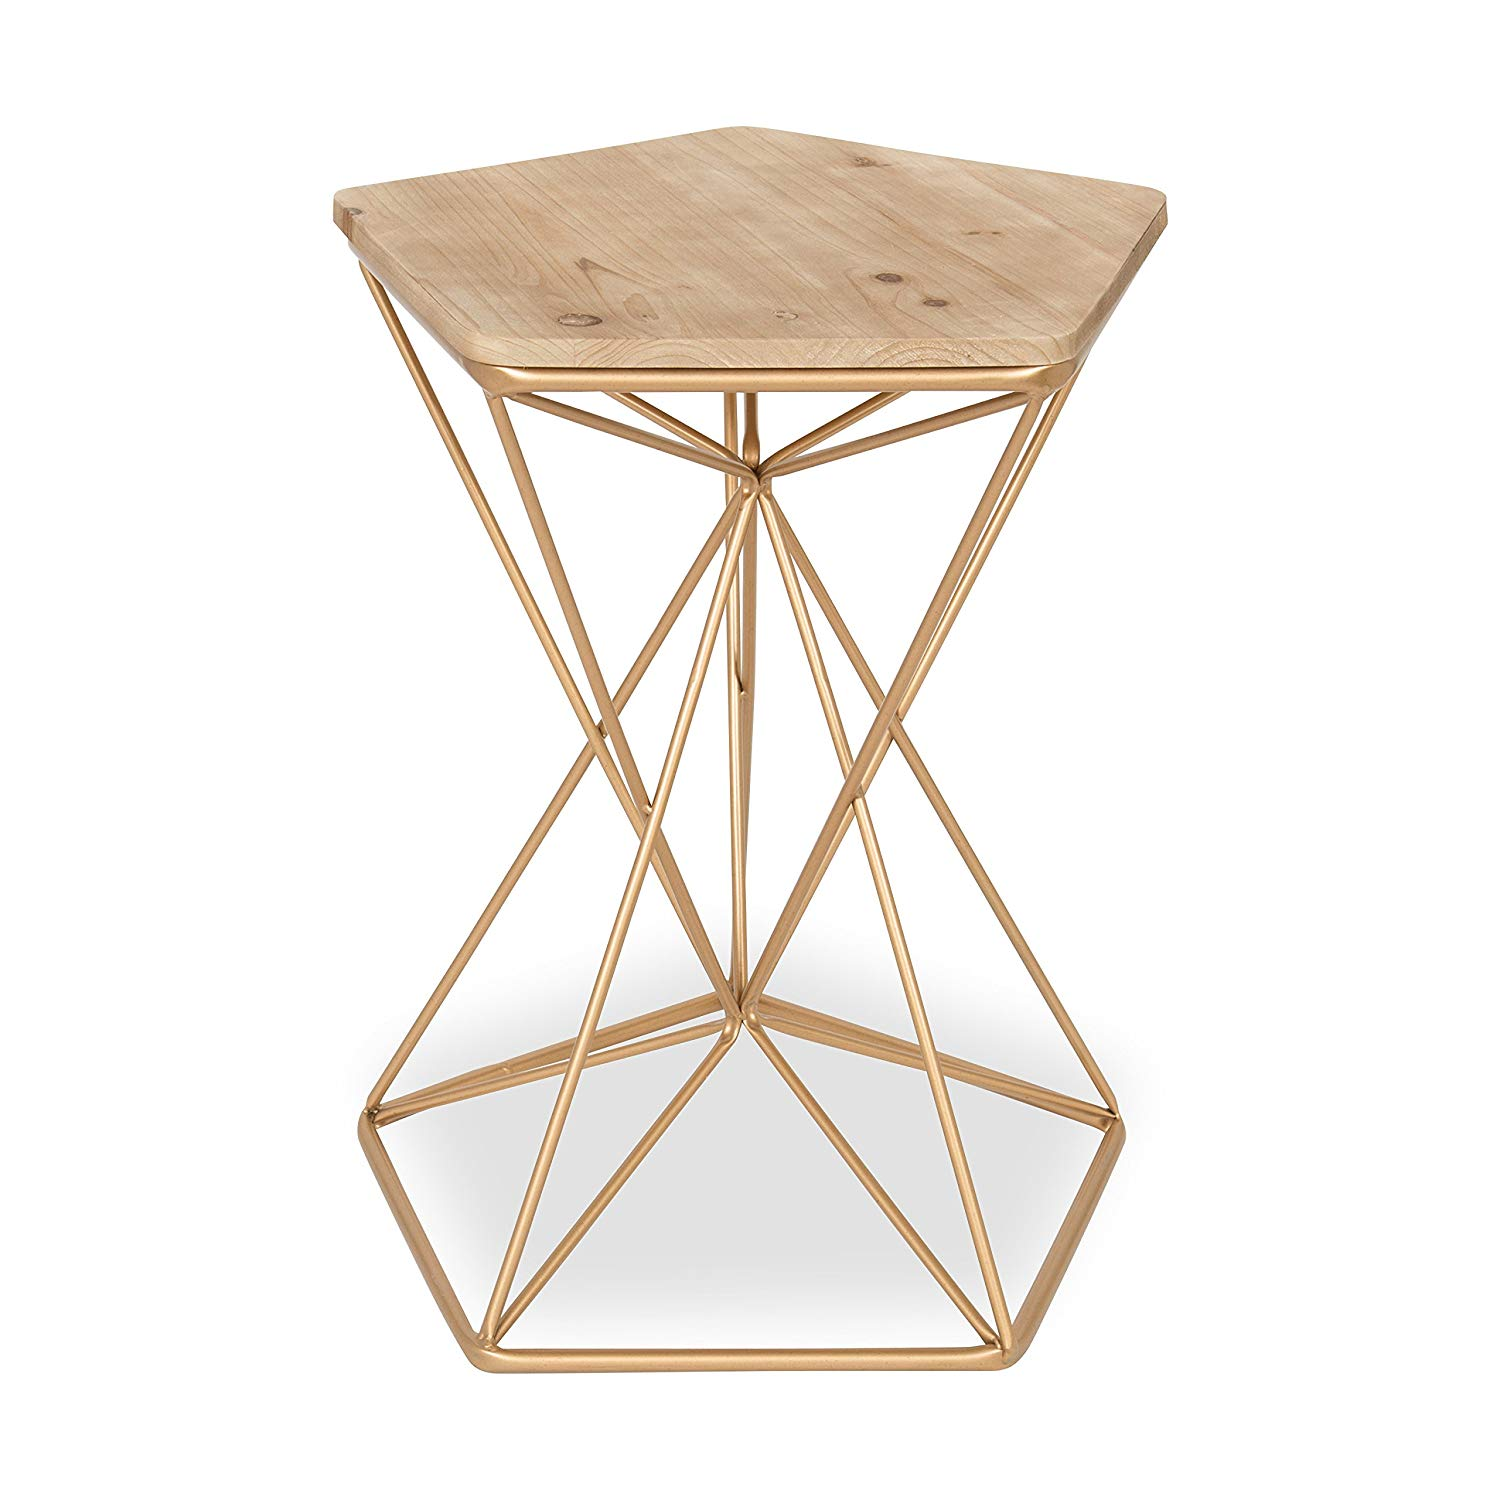 kate and laurel ulane metal side accent table with wood top natural rose gold home kitchen copper mirrored end console lamps set tables small rattan nate berkus bedding mosaic